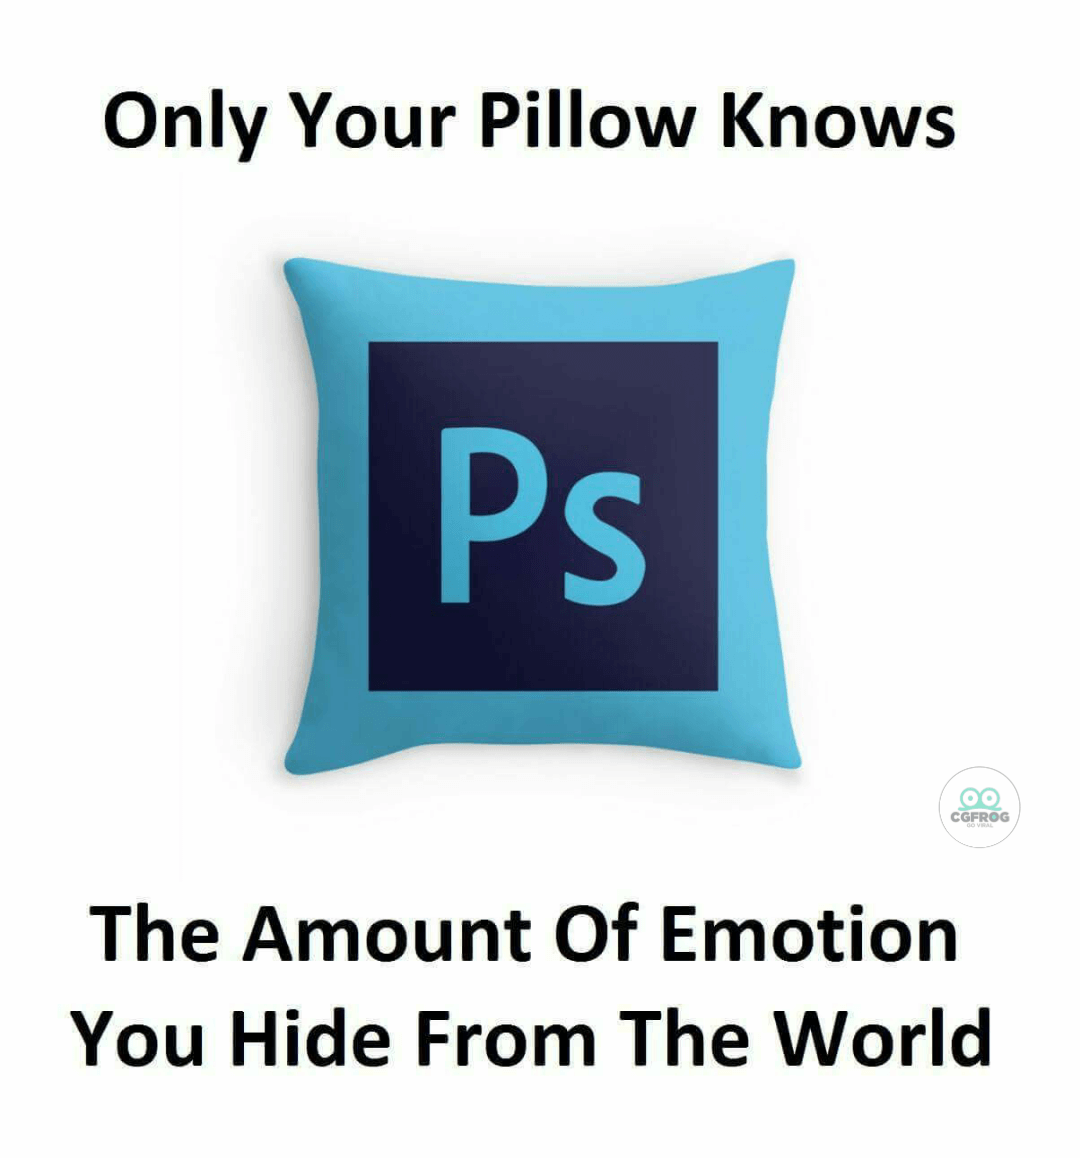 Photoshop Meme Only pillows knows the emotions